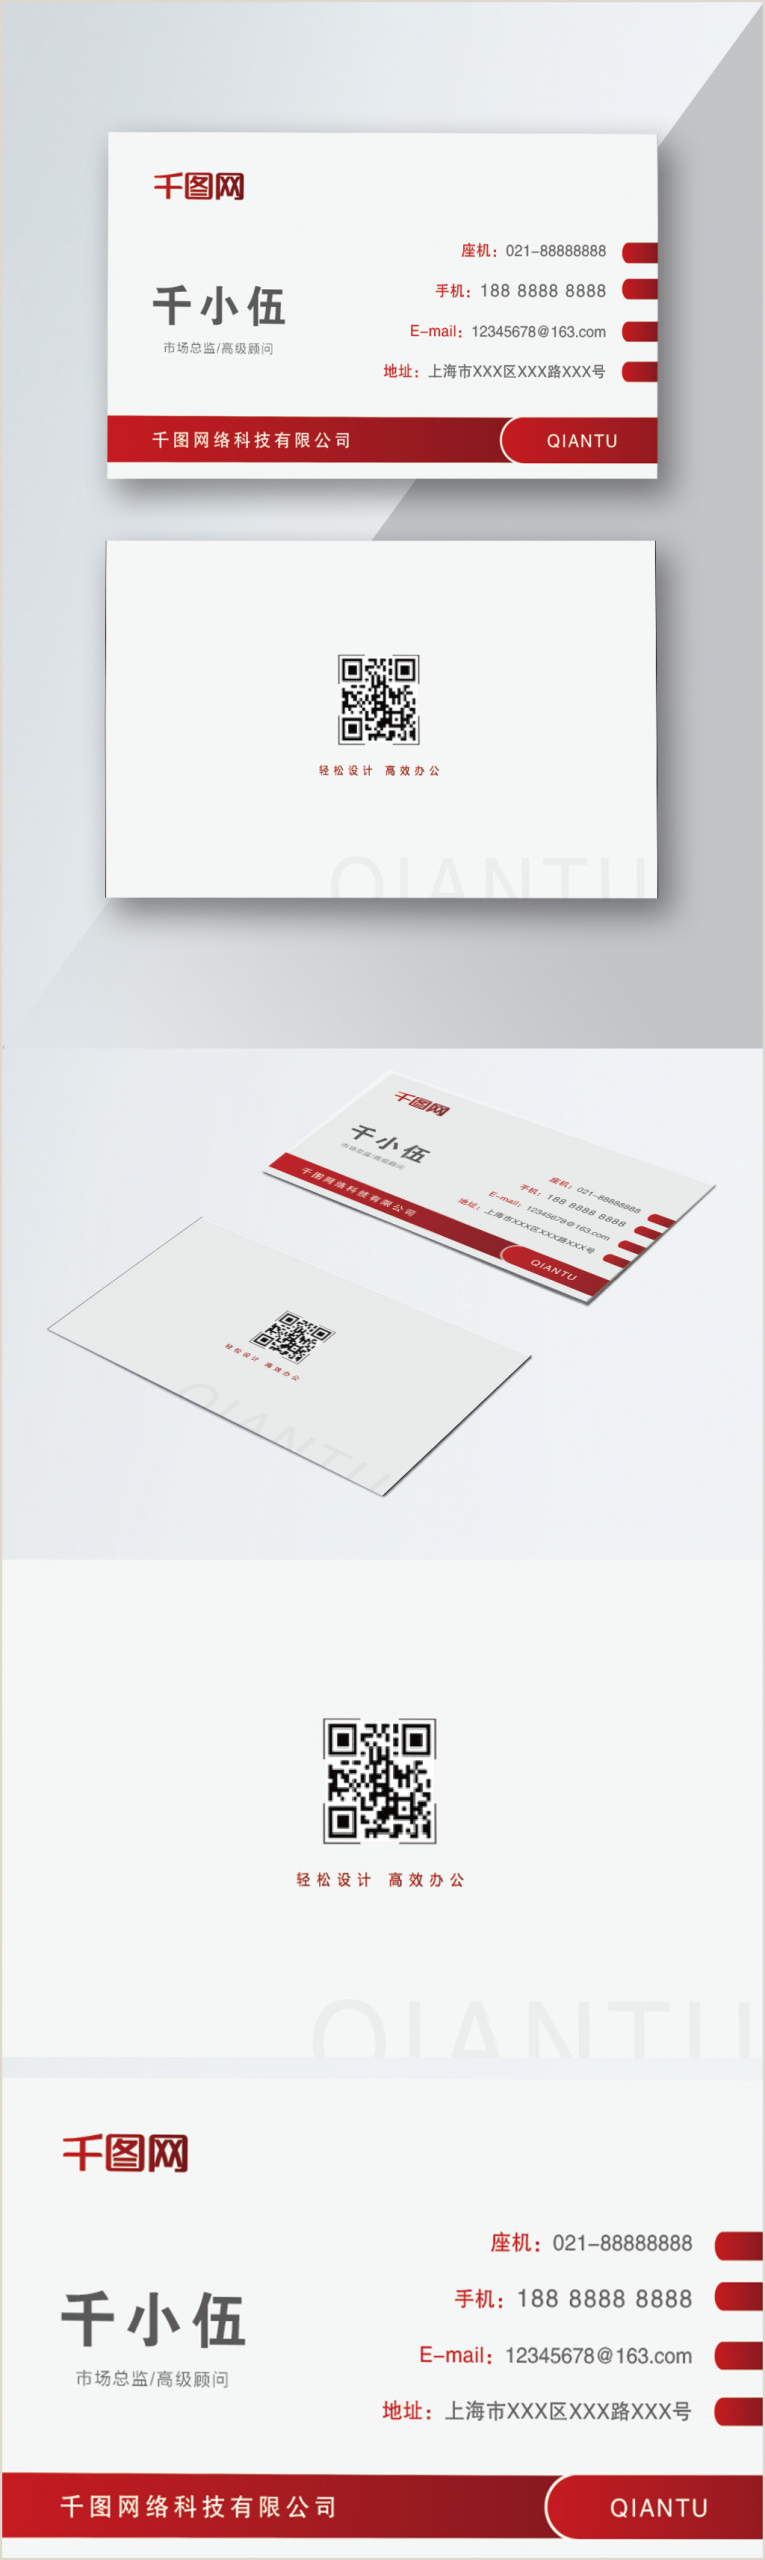 Business Card Size Ad Template Black And White Business Senior Business Card With Qr Code